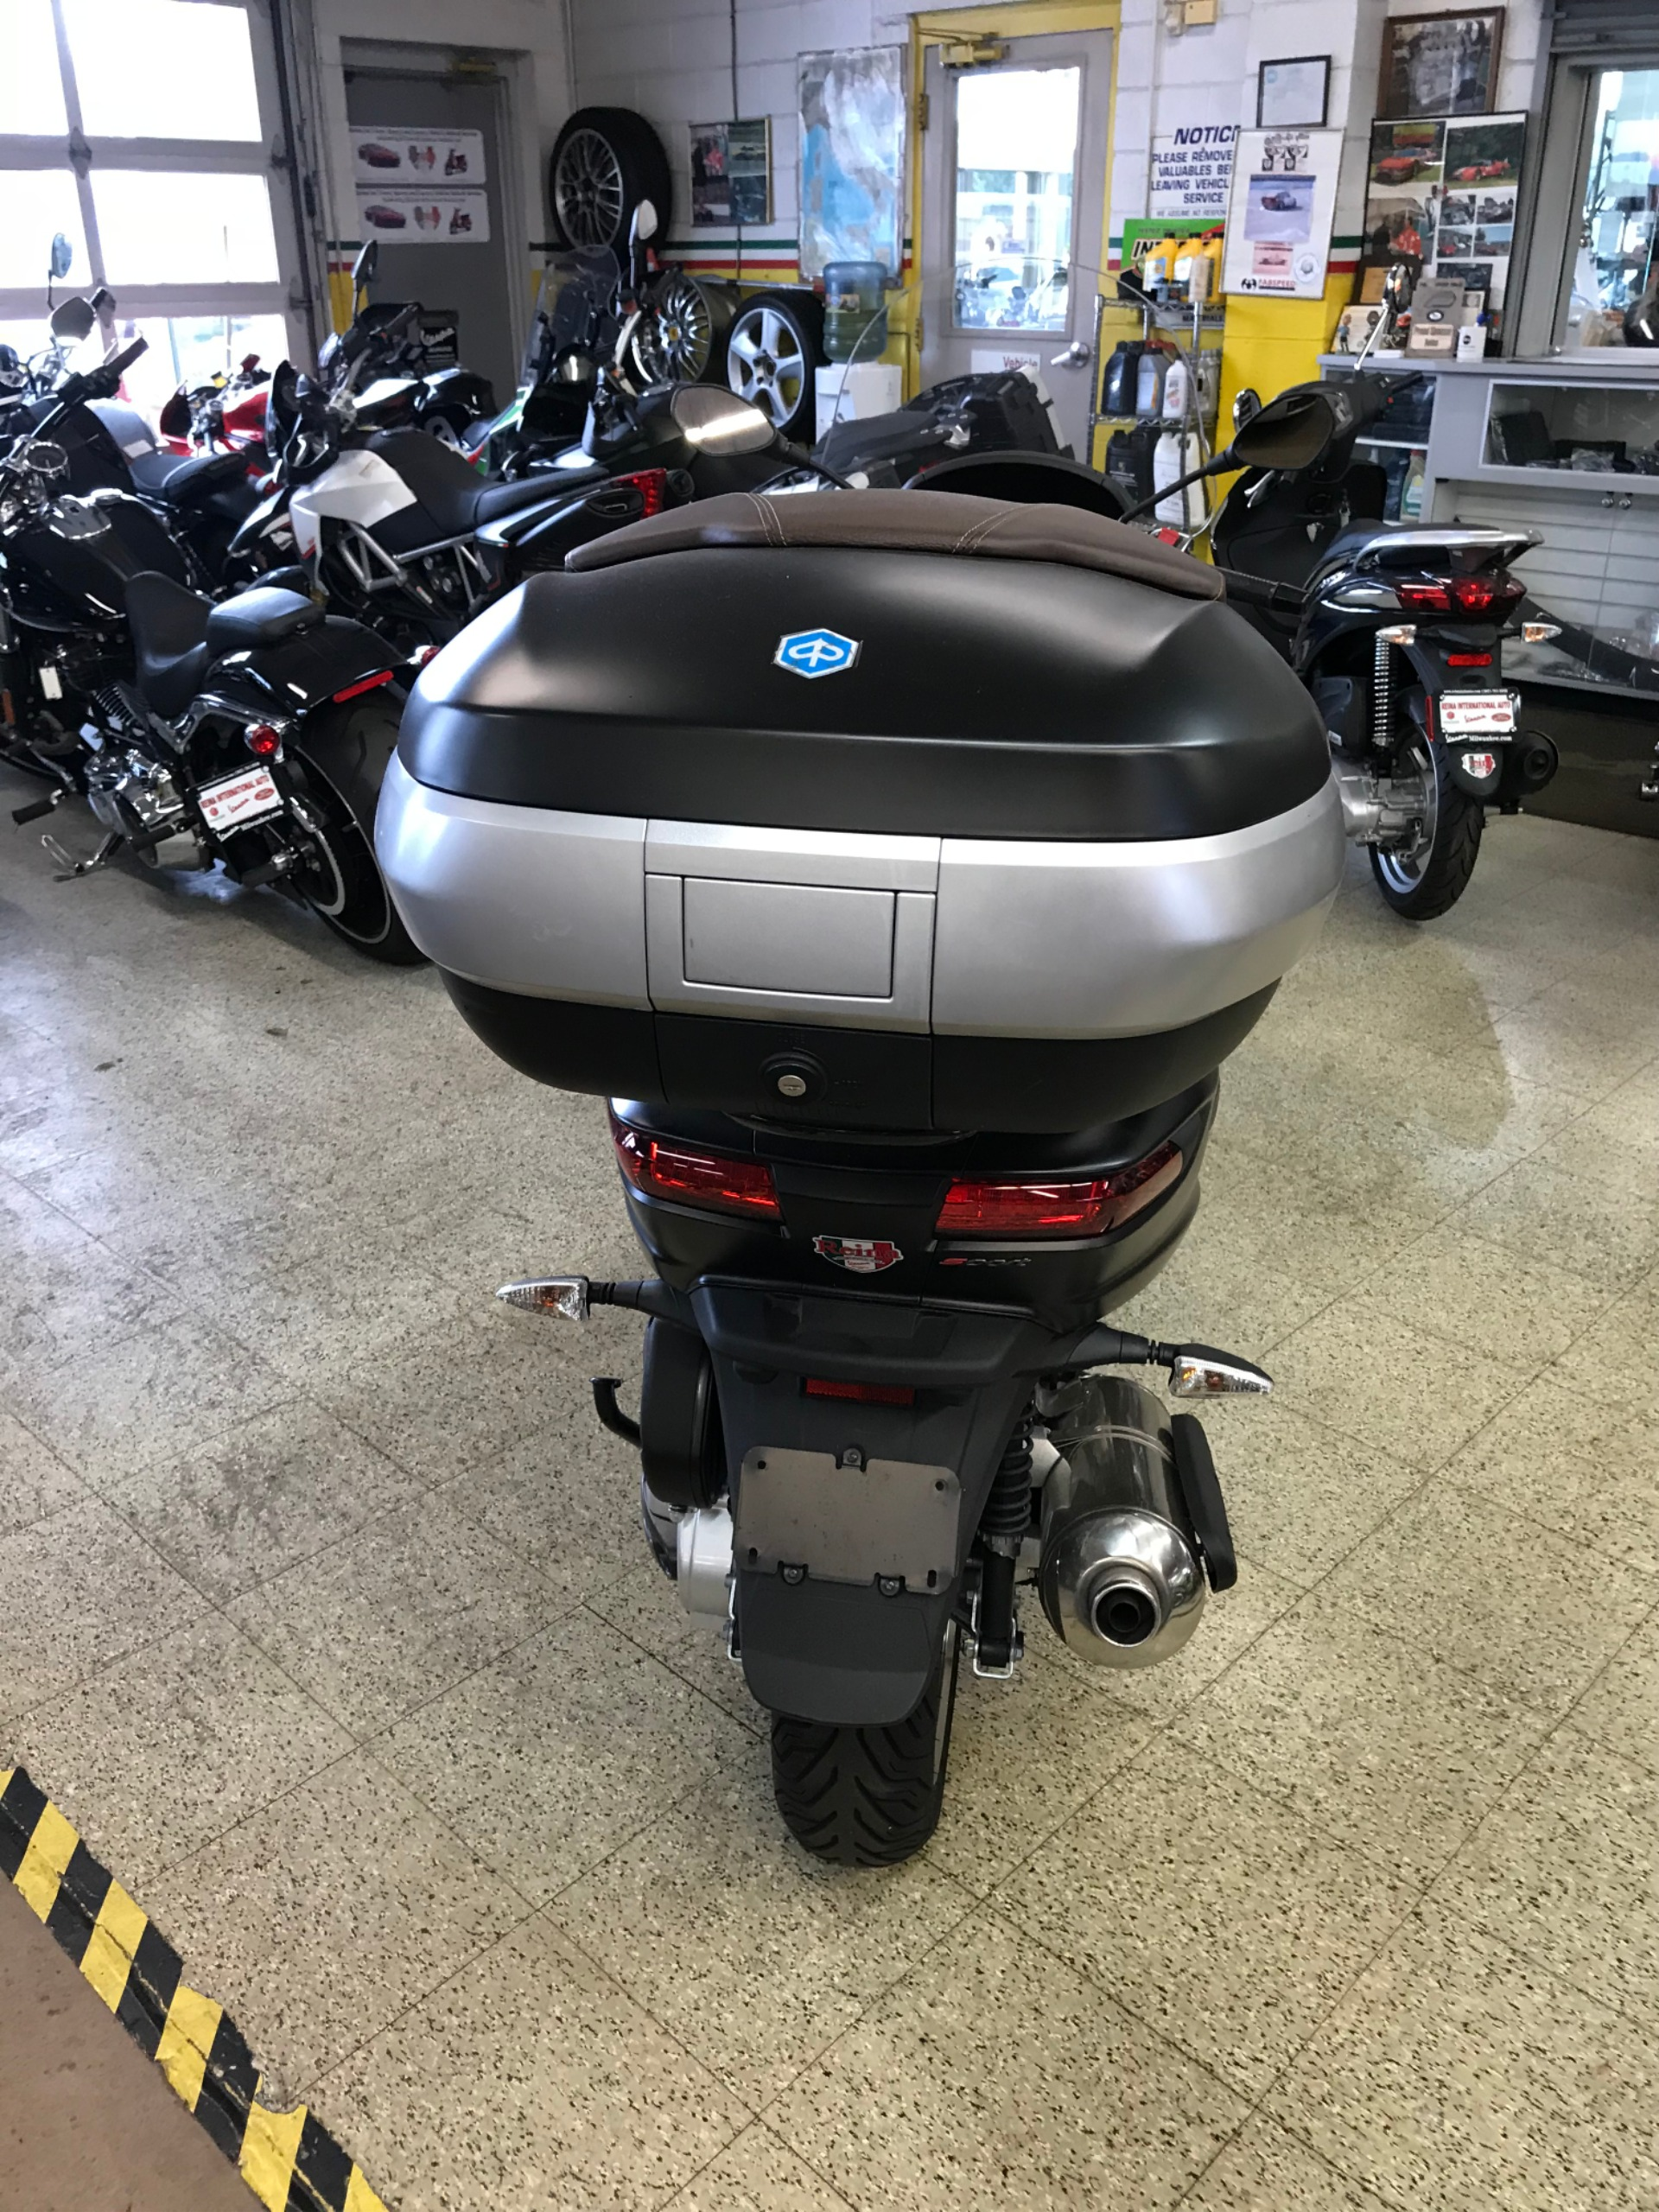 Used-2016-Piaggio-MP3-500